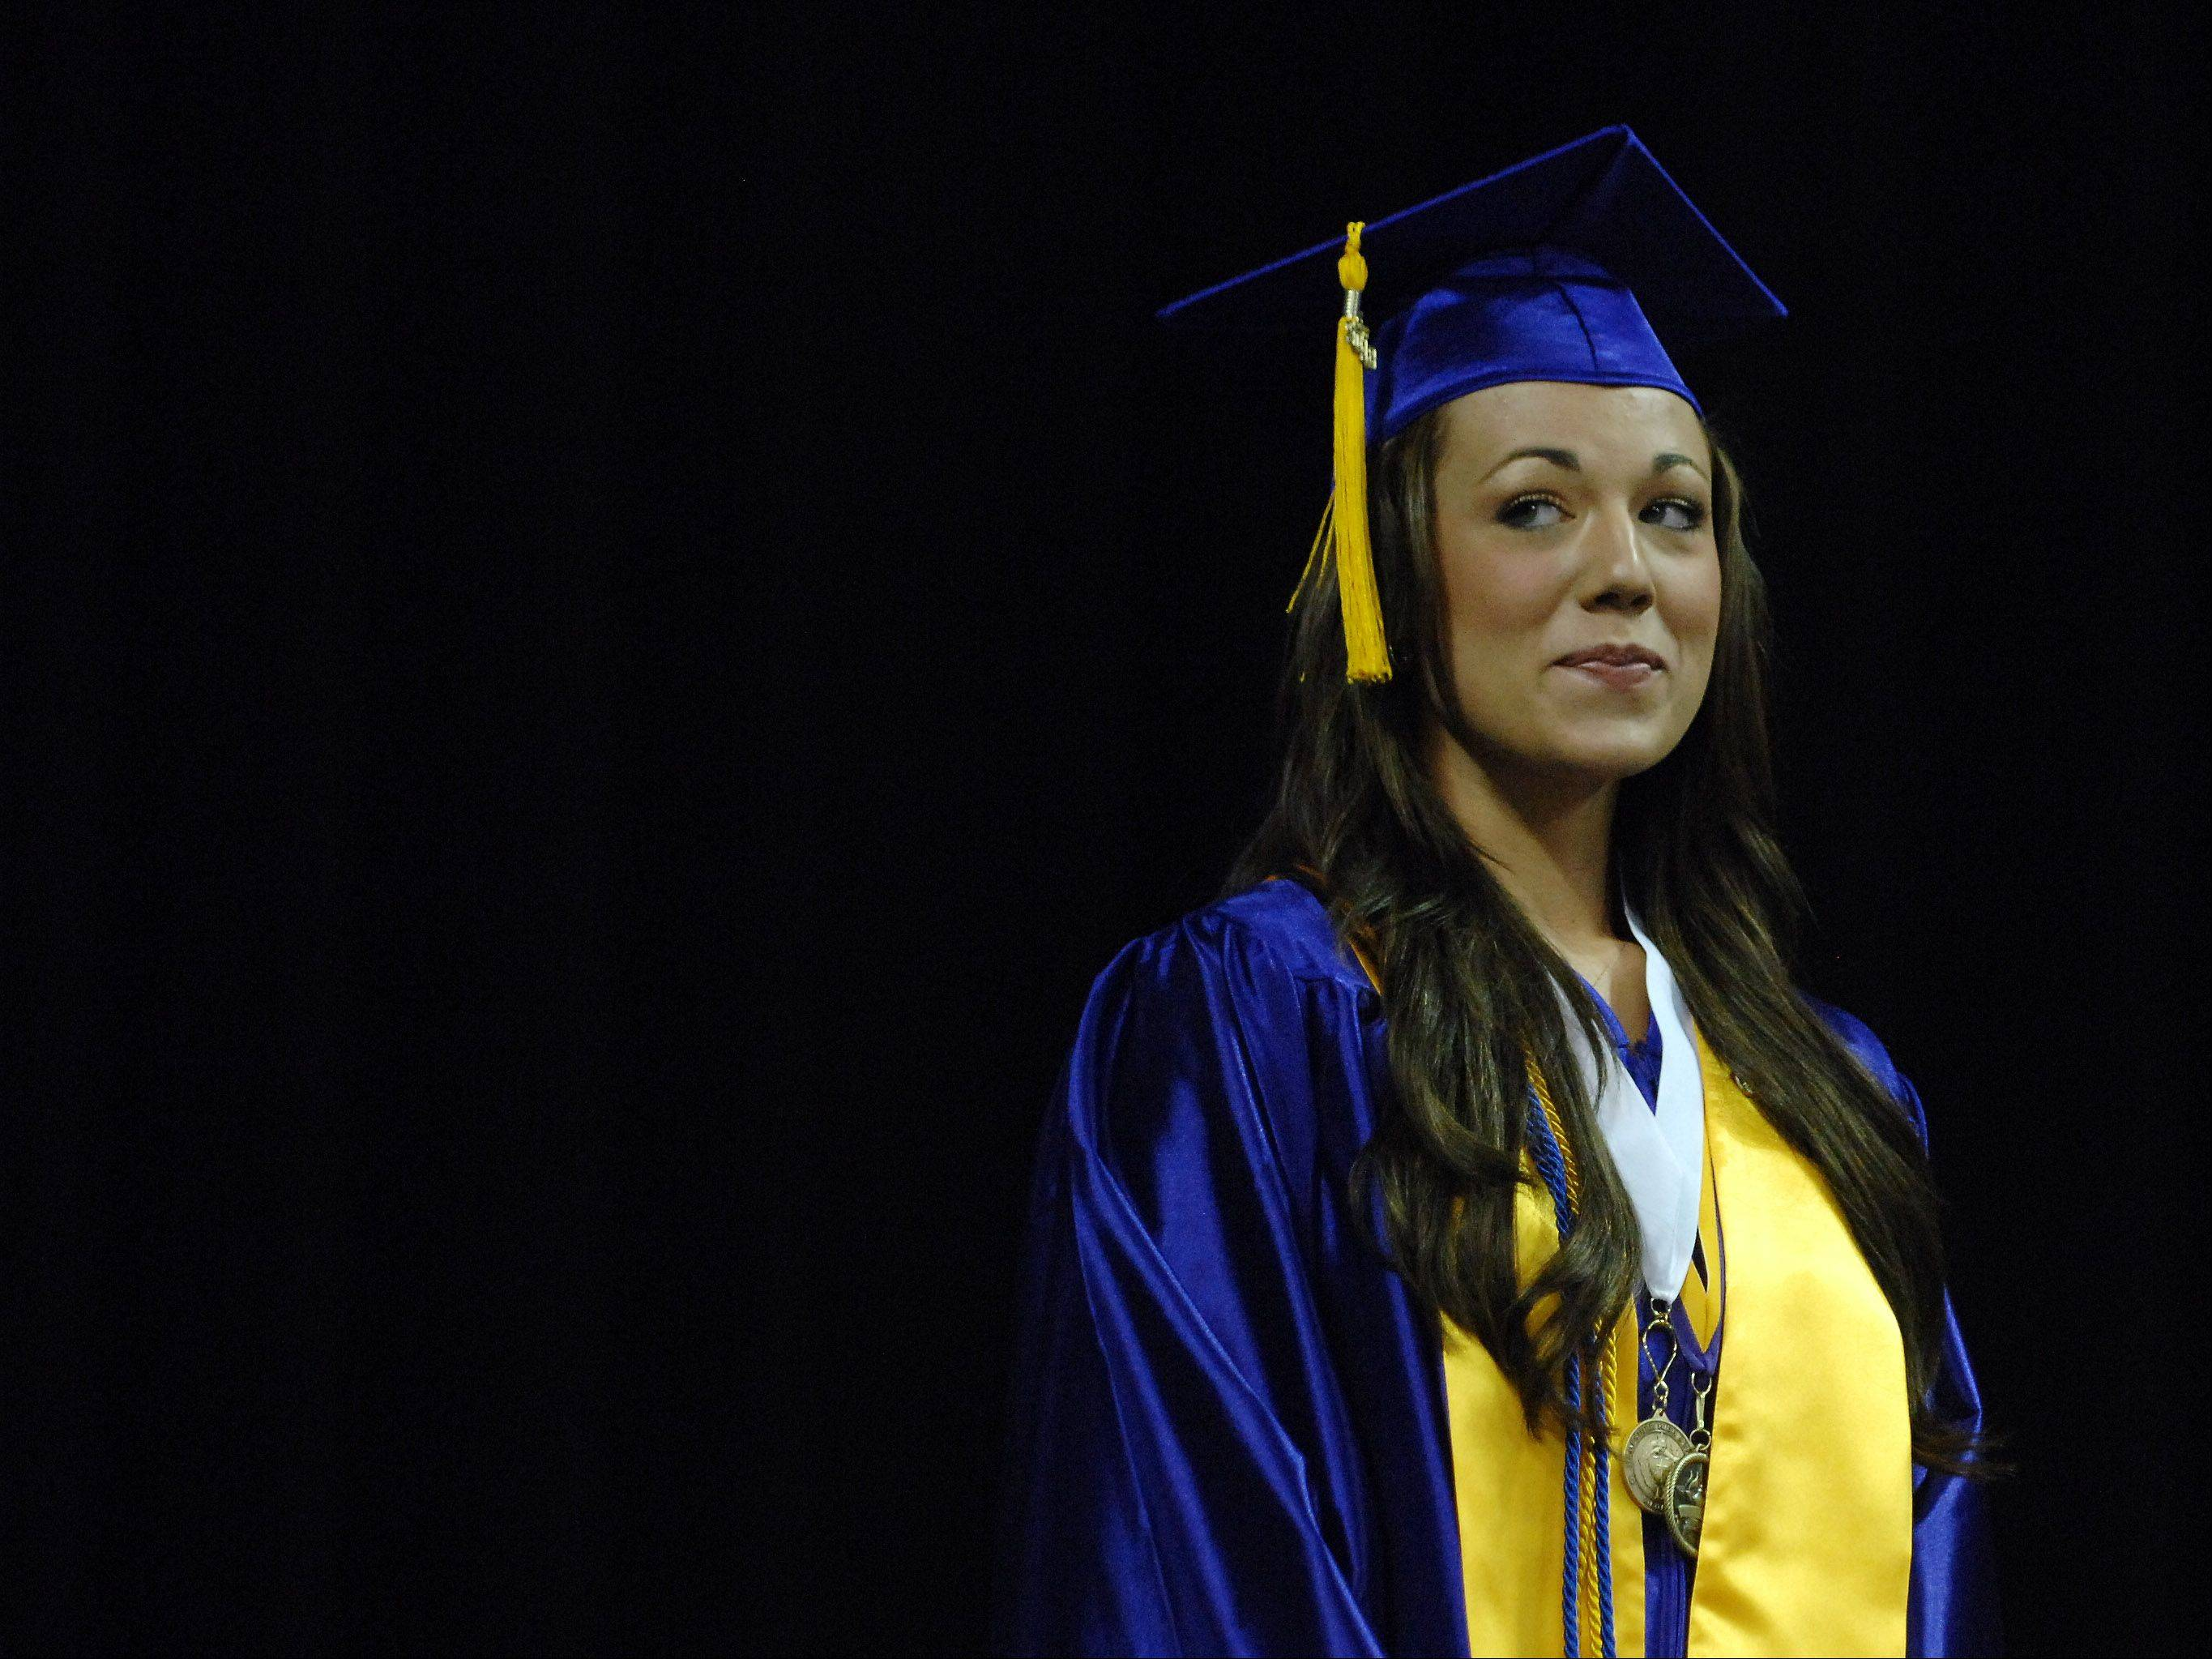 Images from the Hampshire High School graduation ceremony Saturday, May 18, 2013 at the Sears Centre in Hoffman Estates.